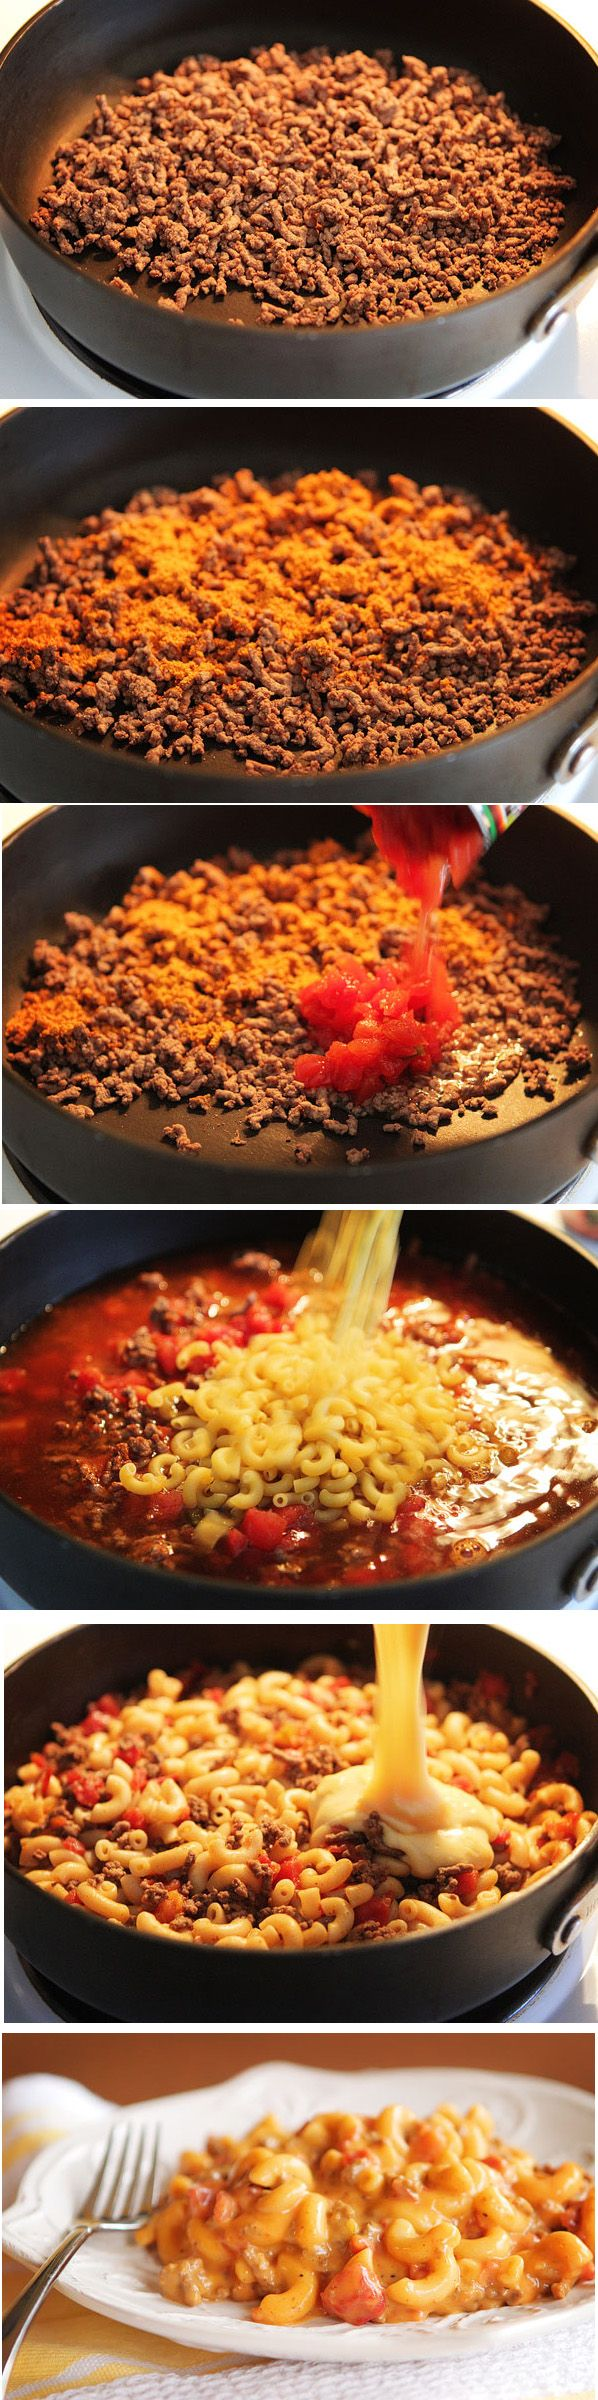 Ingredients  1 lb lean hamburger meat 1 pkg taco seasoning 1 can Rotel tomatoes and green chilies 2 cups beef broth 1 cup elbow macaroni